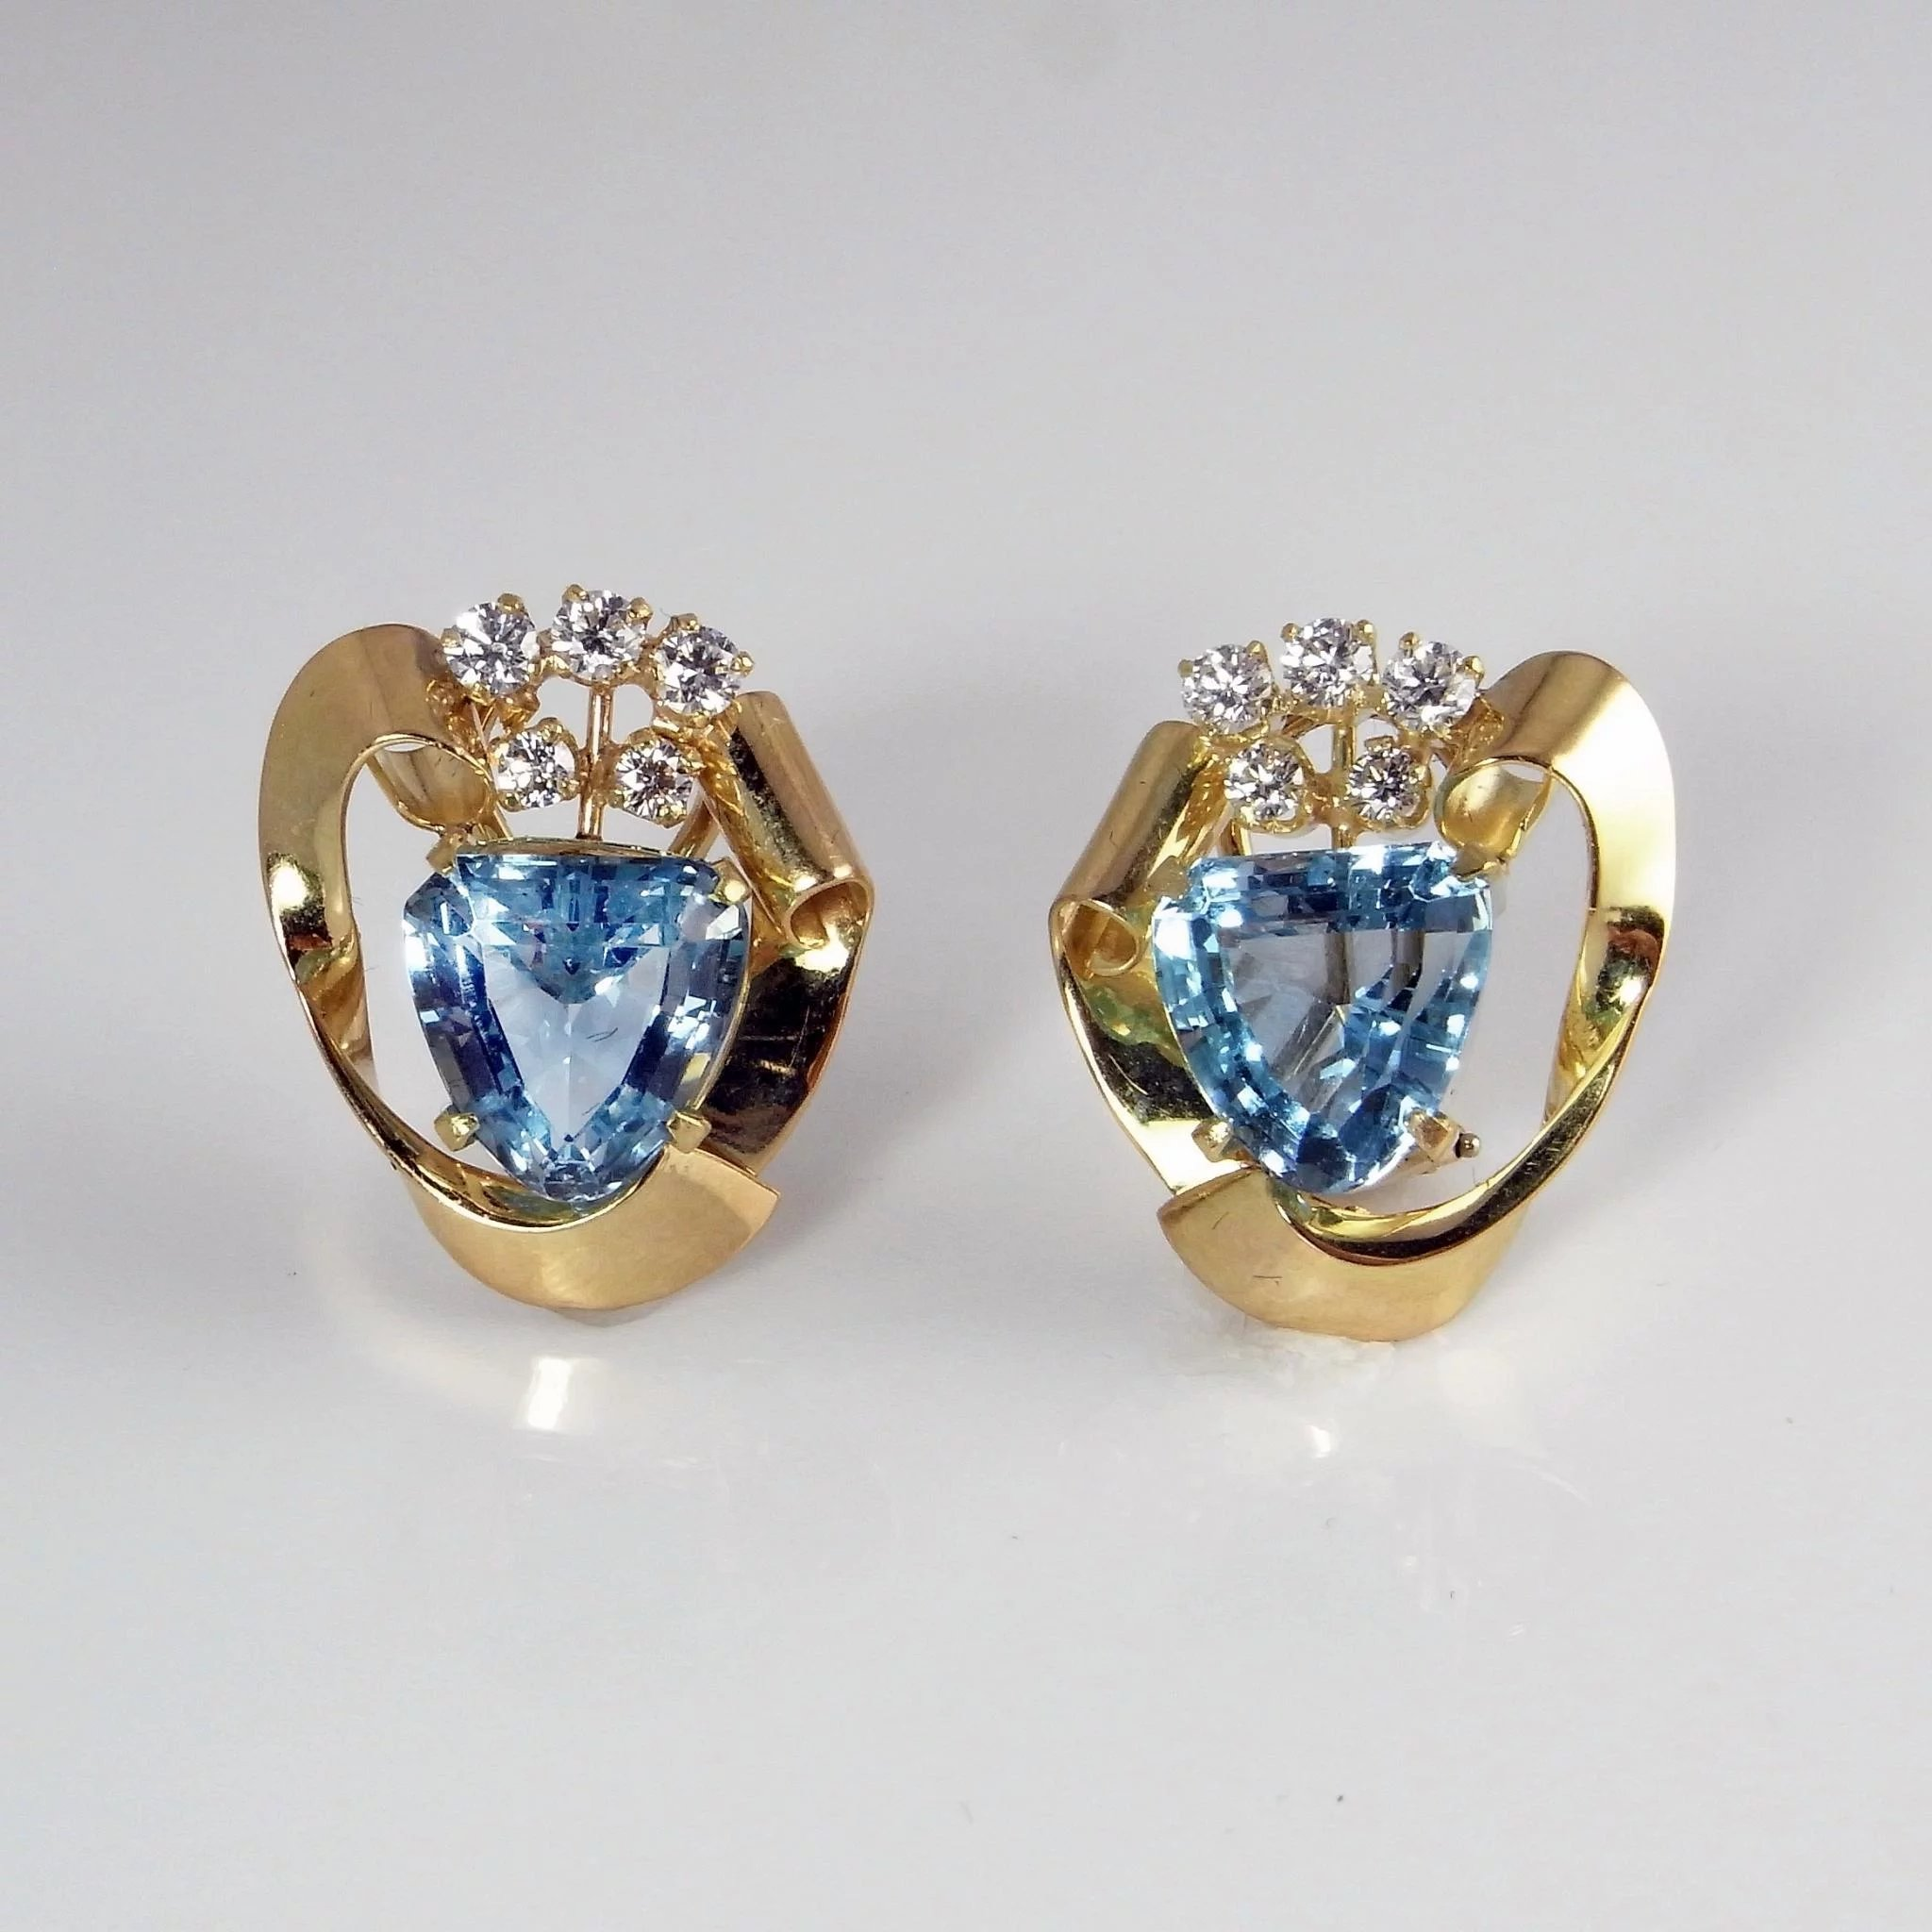 progressive genuine products inc earrings collection the faith copy tassion aquamarine of